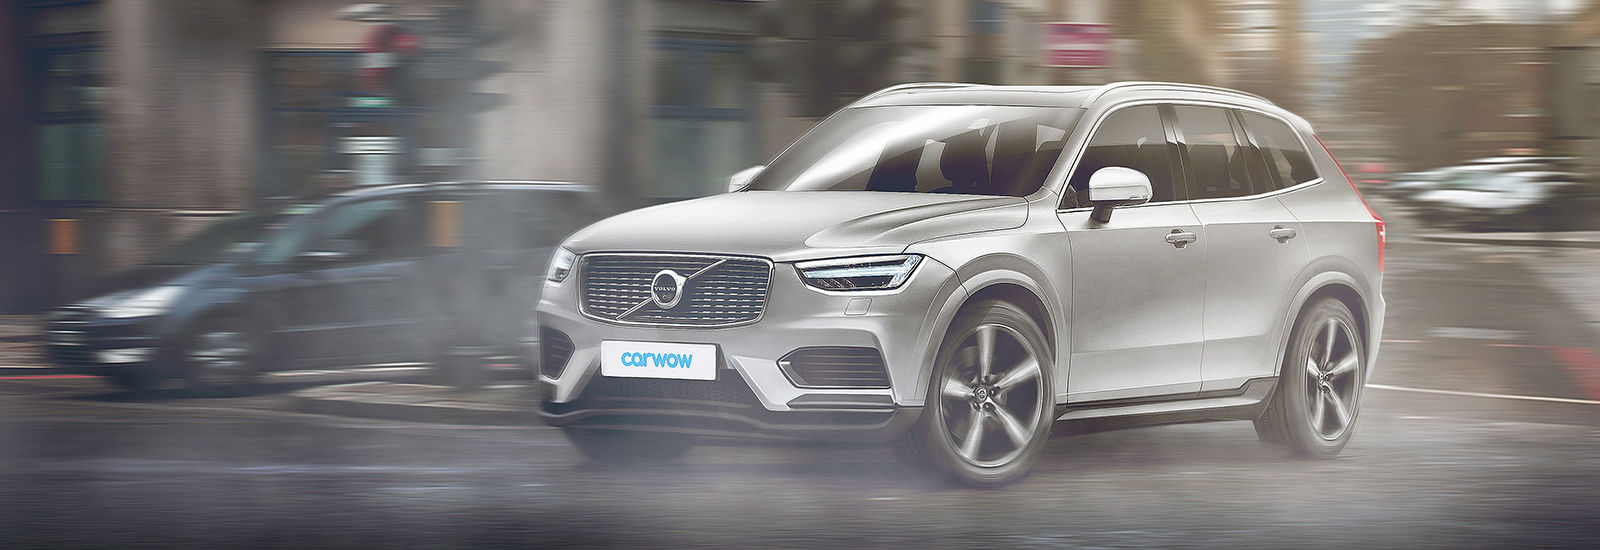 2018 volvo xc60 price specs and release date carwow. Black Bedroom Furniture Sets. Home Design Ideas